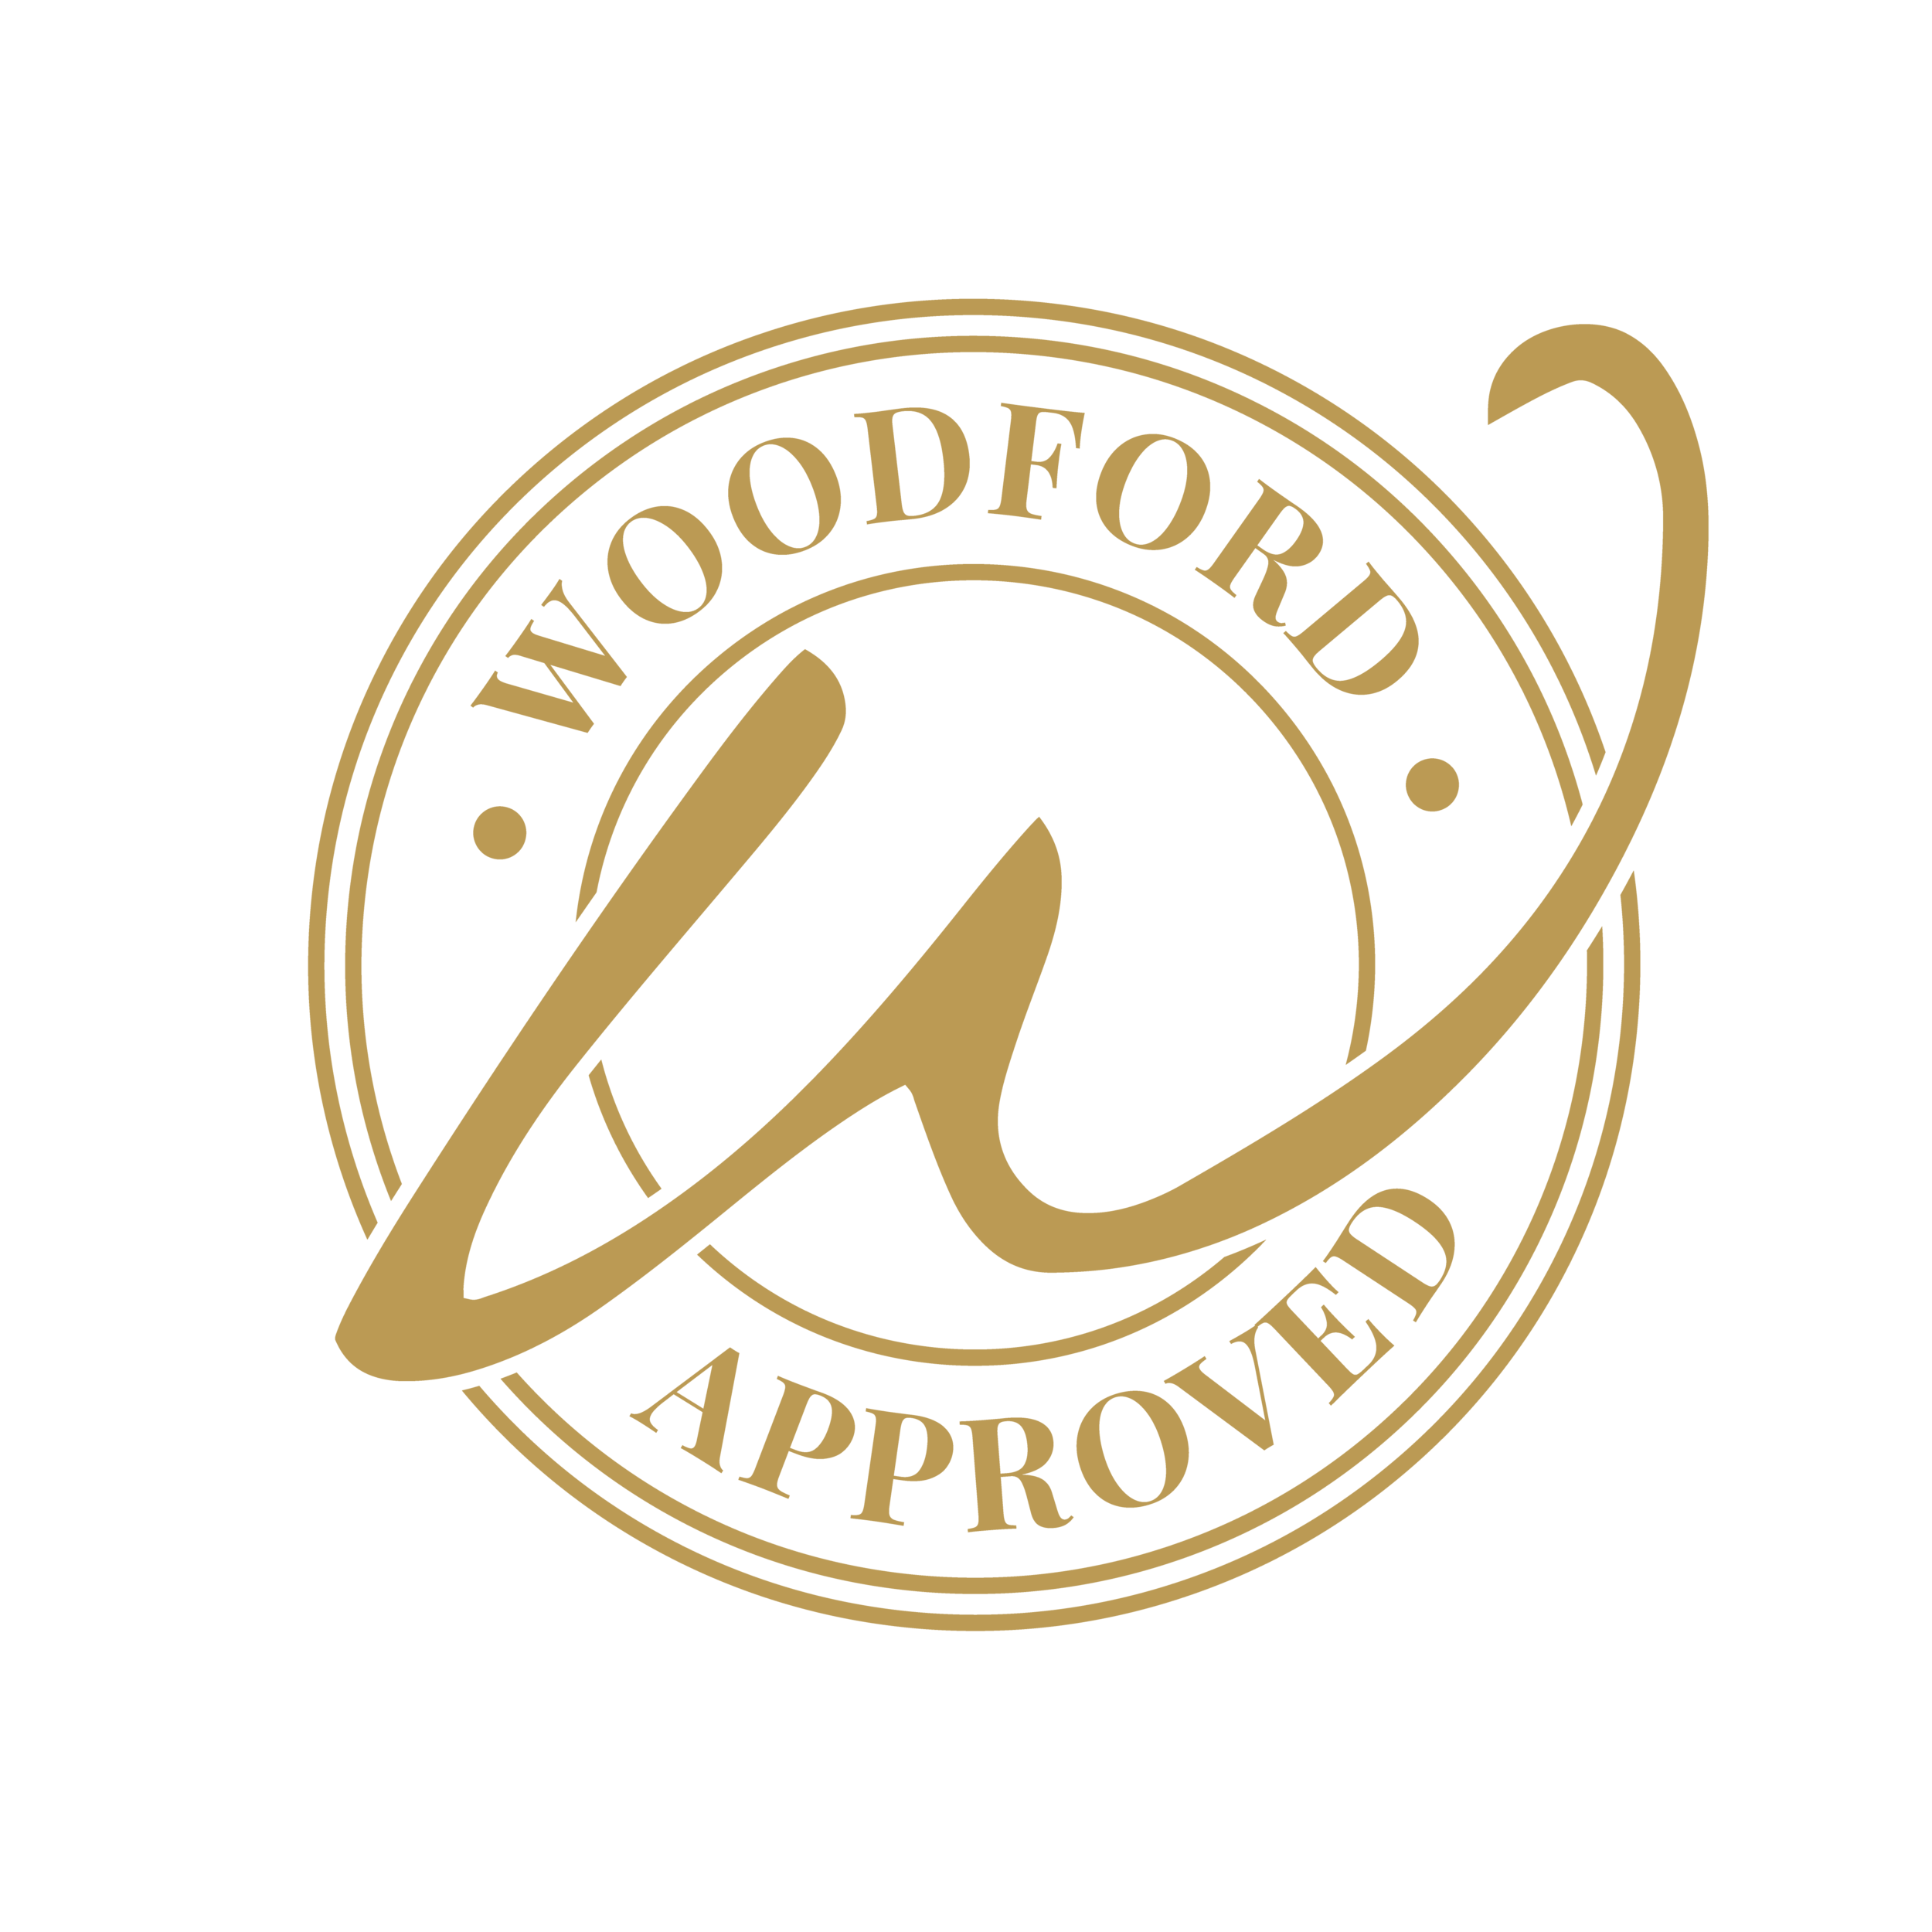 Woodford_Approved_Badge_Gold.png